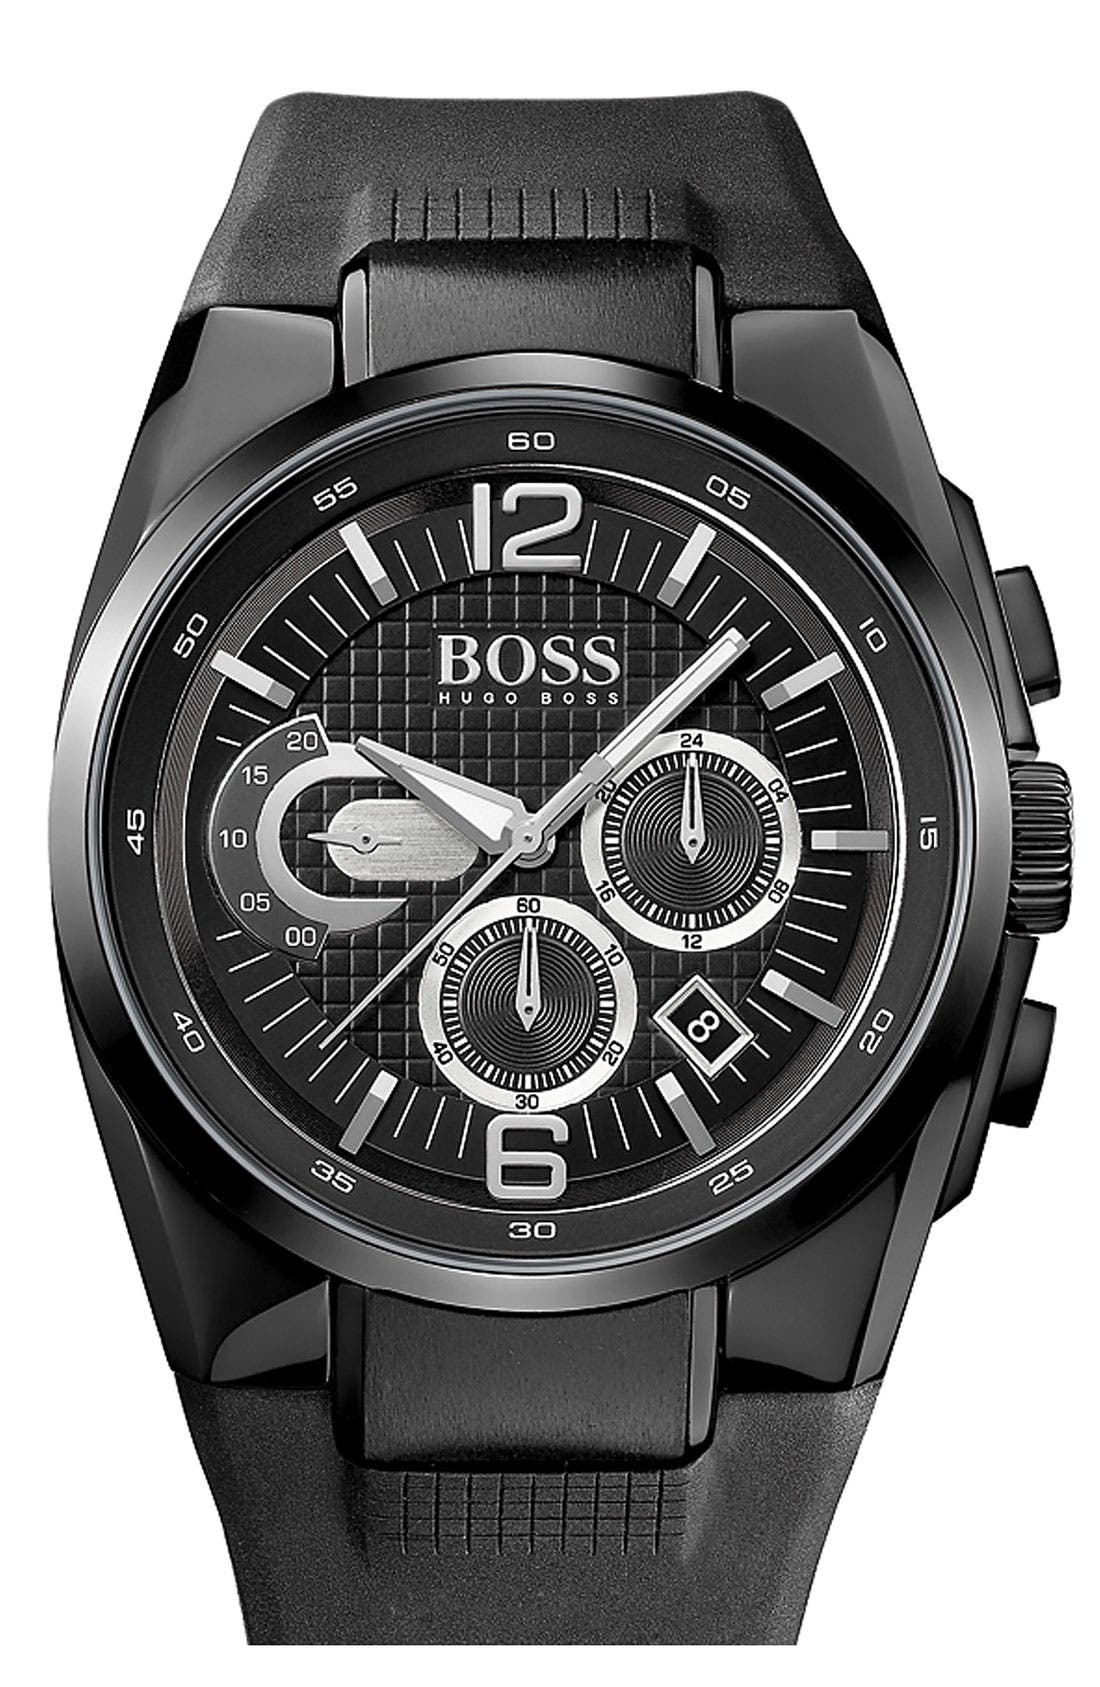 Main Image - BOSS HUGO BOSS 'HB2005' Chronograph Rubber Strap Watch, 44mm